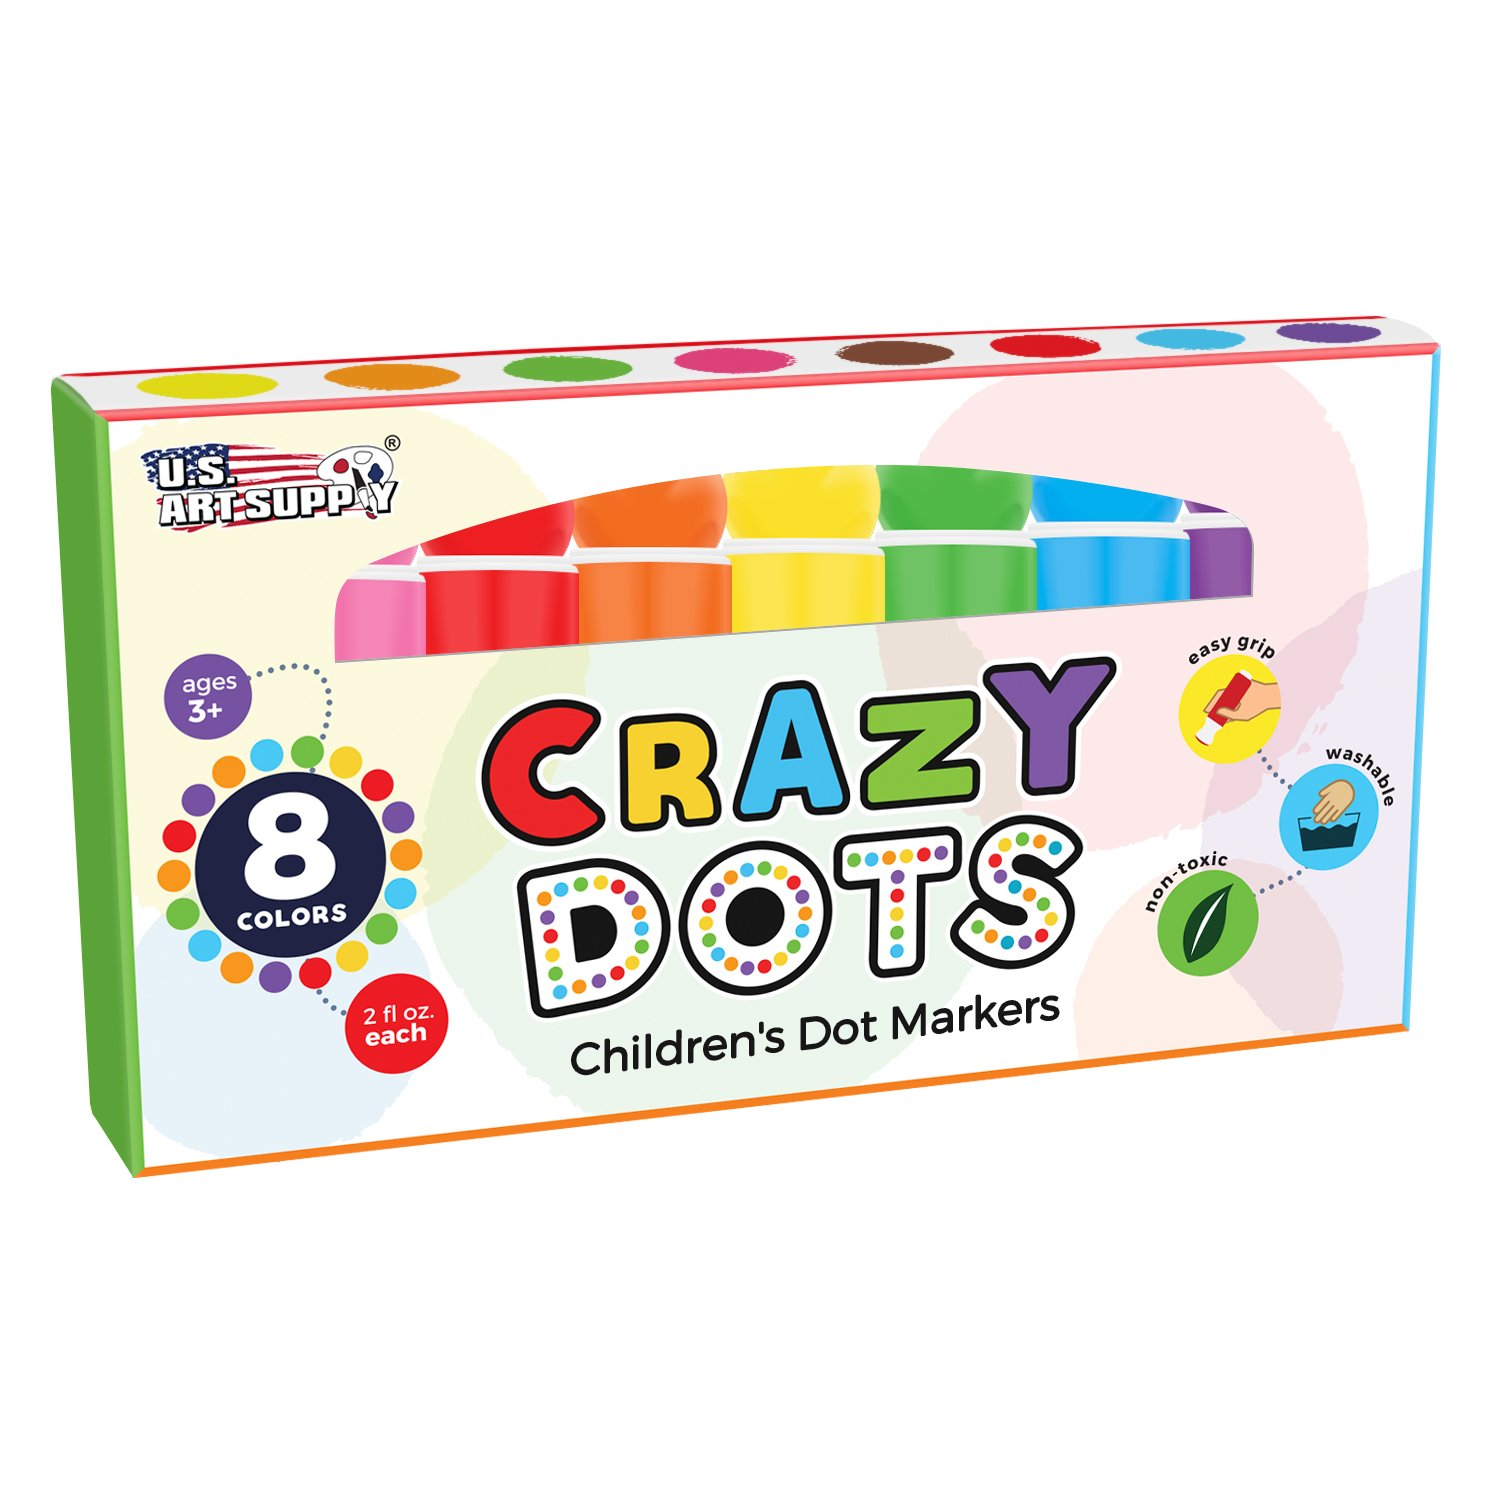 U.S. Art Supply 8 Color Crazy Dots Markers - Children's Washable Easy Grip Non-Toxic Paint Marker Daubers by US Art Supply (Image #6)